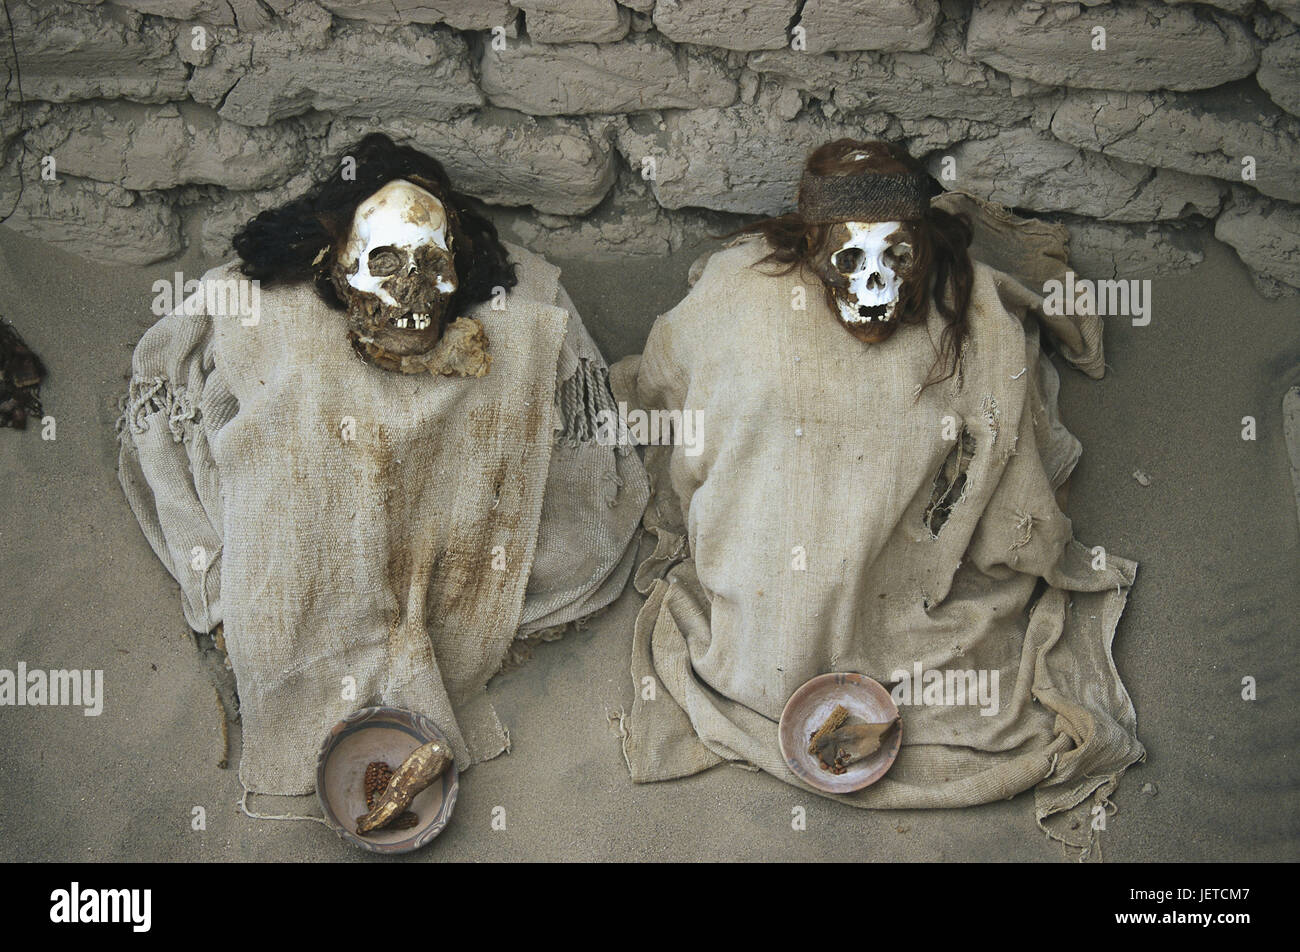 Peru, Nazca, Chauchilla, cemetery, skeletons, substance leftovers, South America, Nazcatal, Chauchilla tomb, tomb, - Stock Image